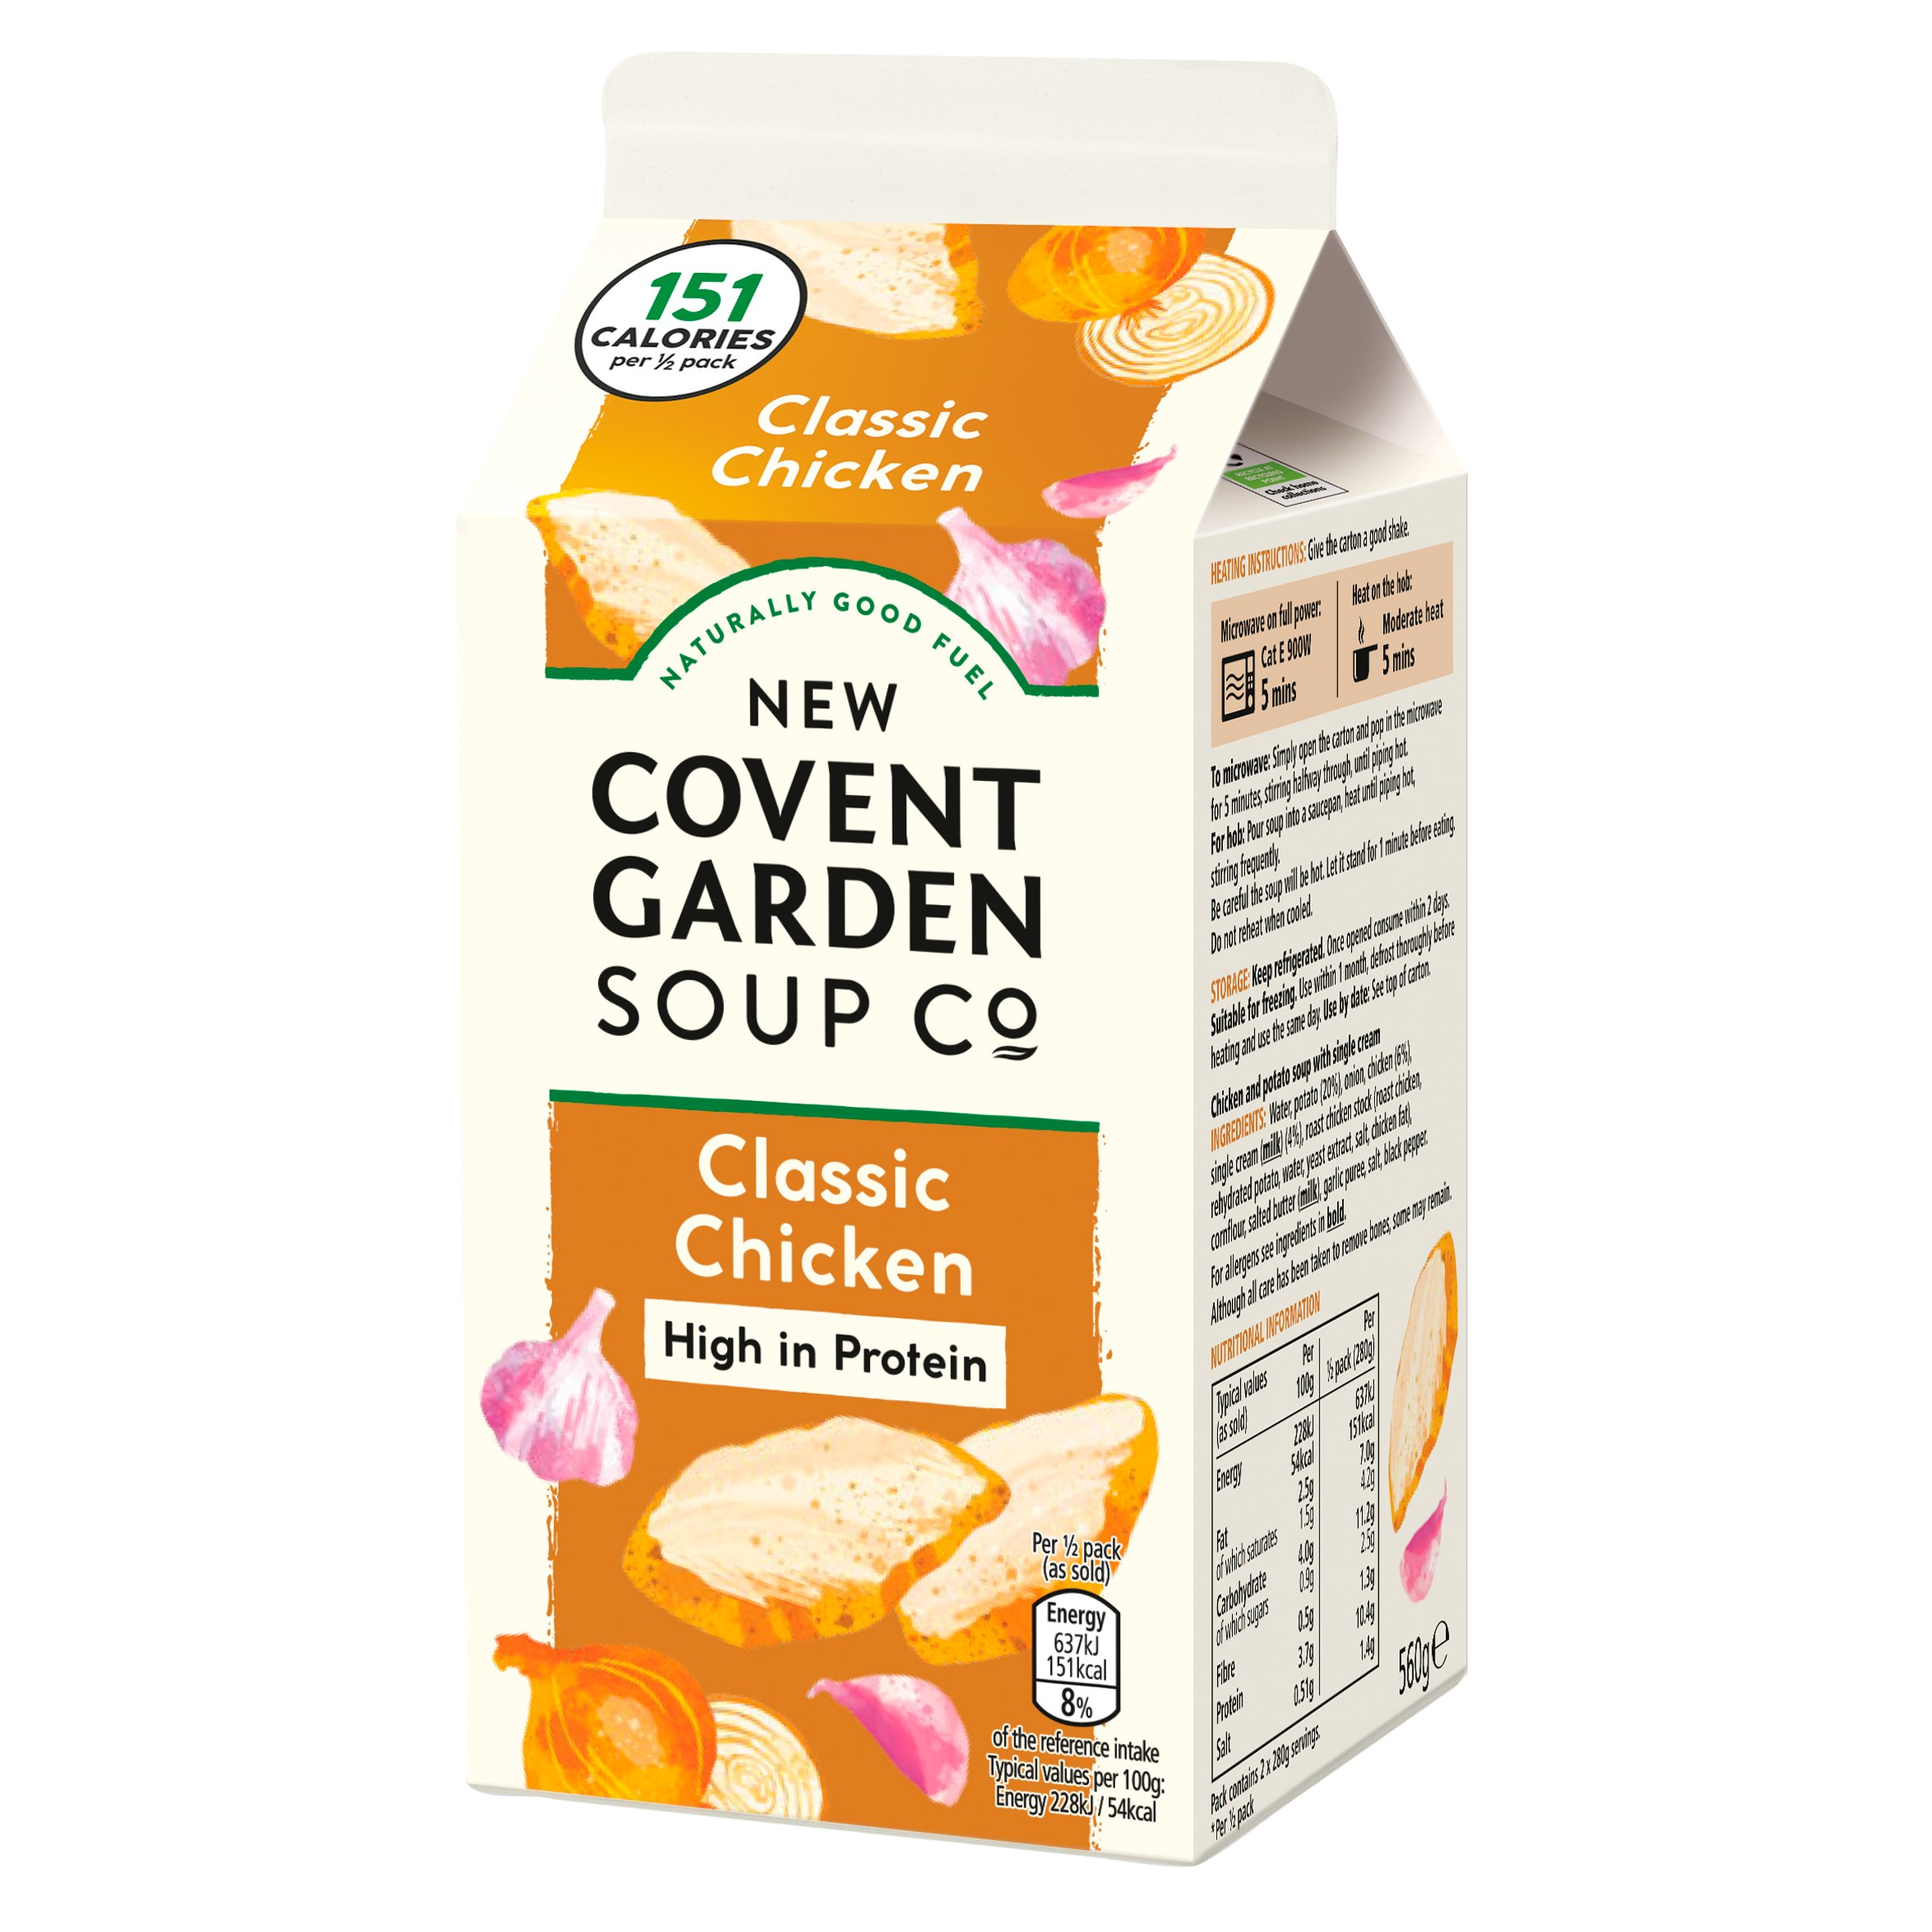 New Covent Garden Soup Co Classic Chicken Soup 560G